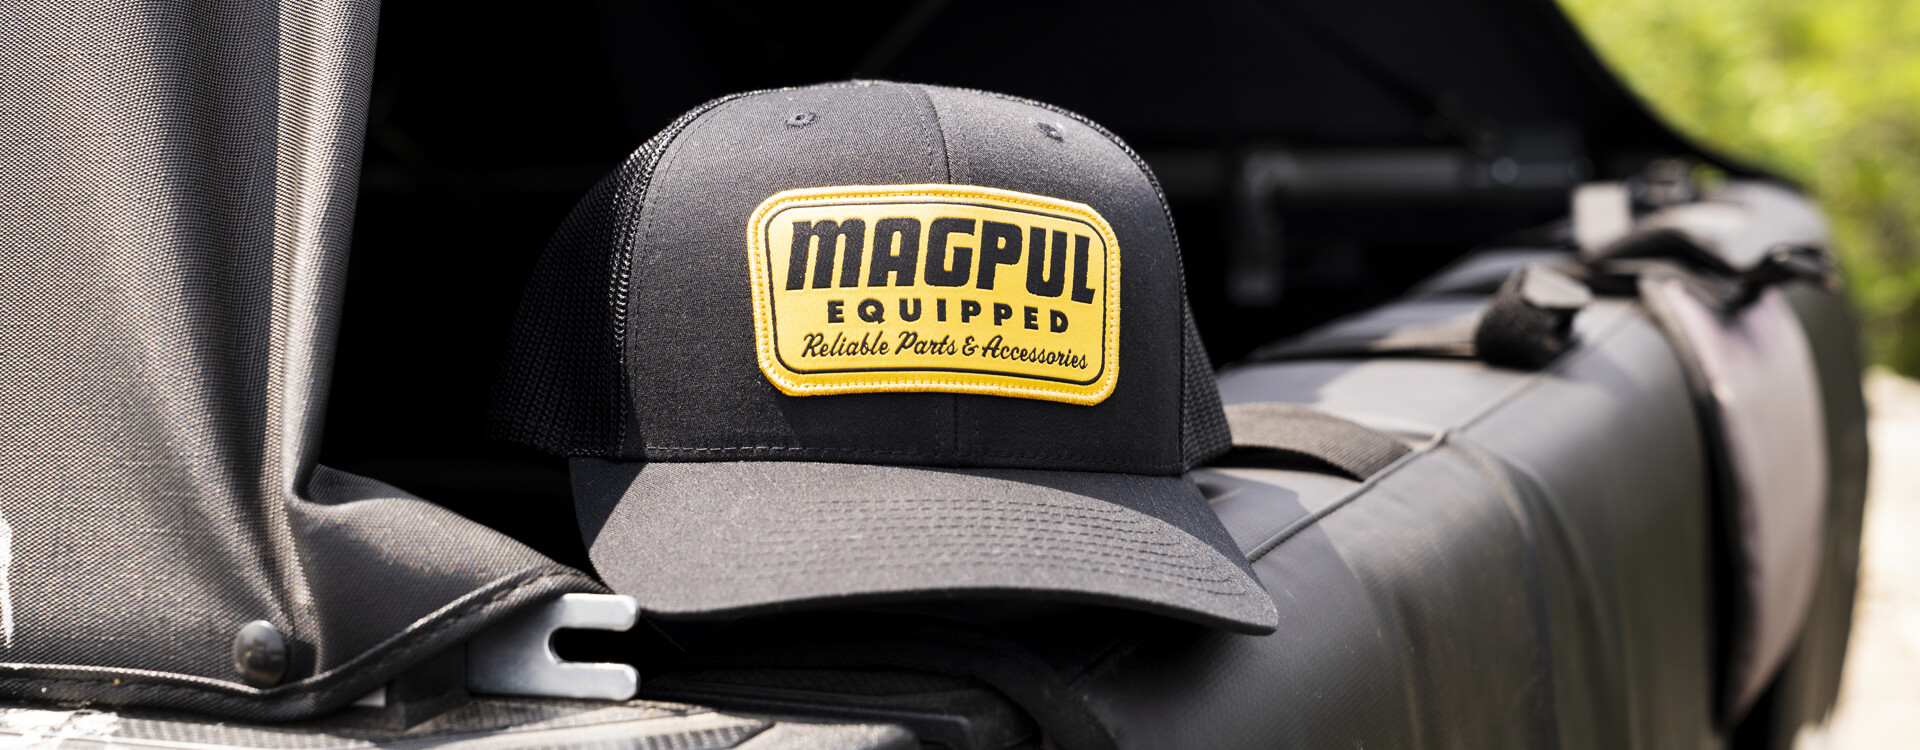 Magpul Equipped Trucker hat in Black with large yellow Magpul Equipped patch on crown sitting on the back of an open tailgate